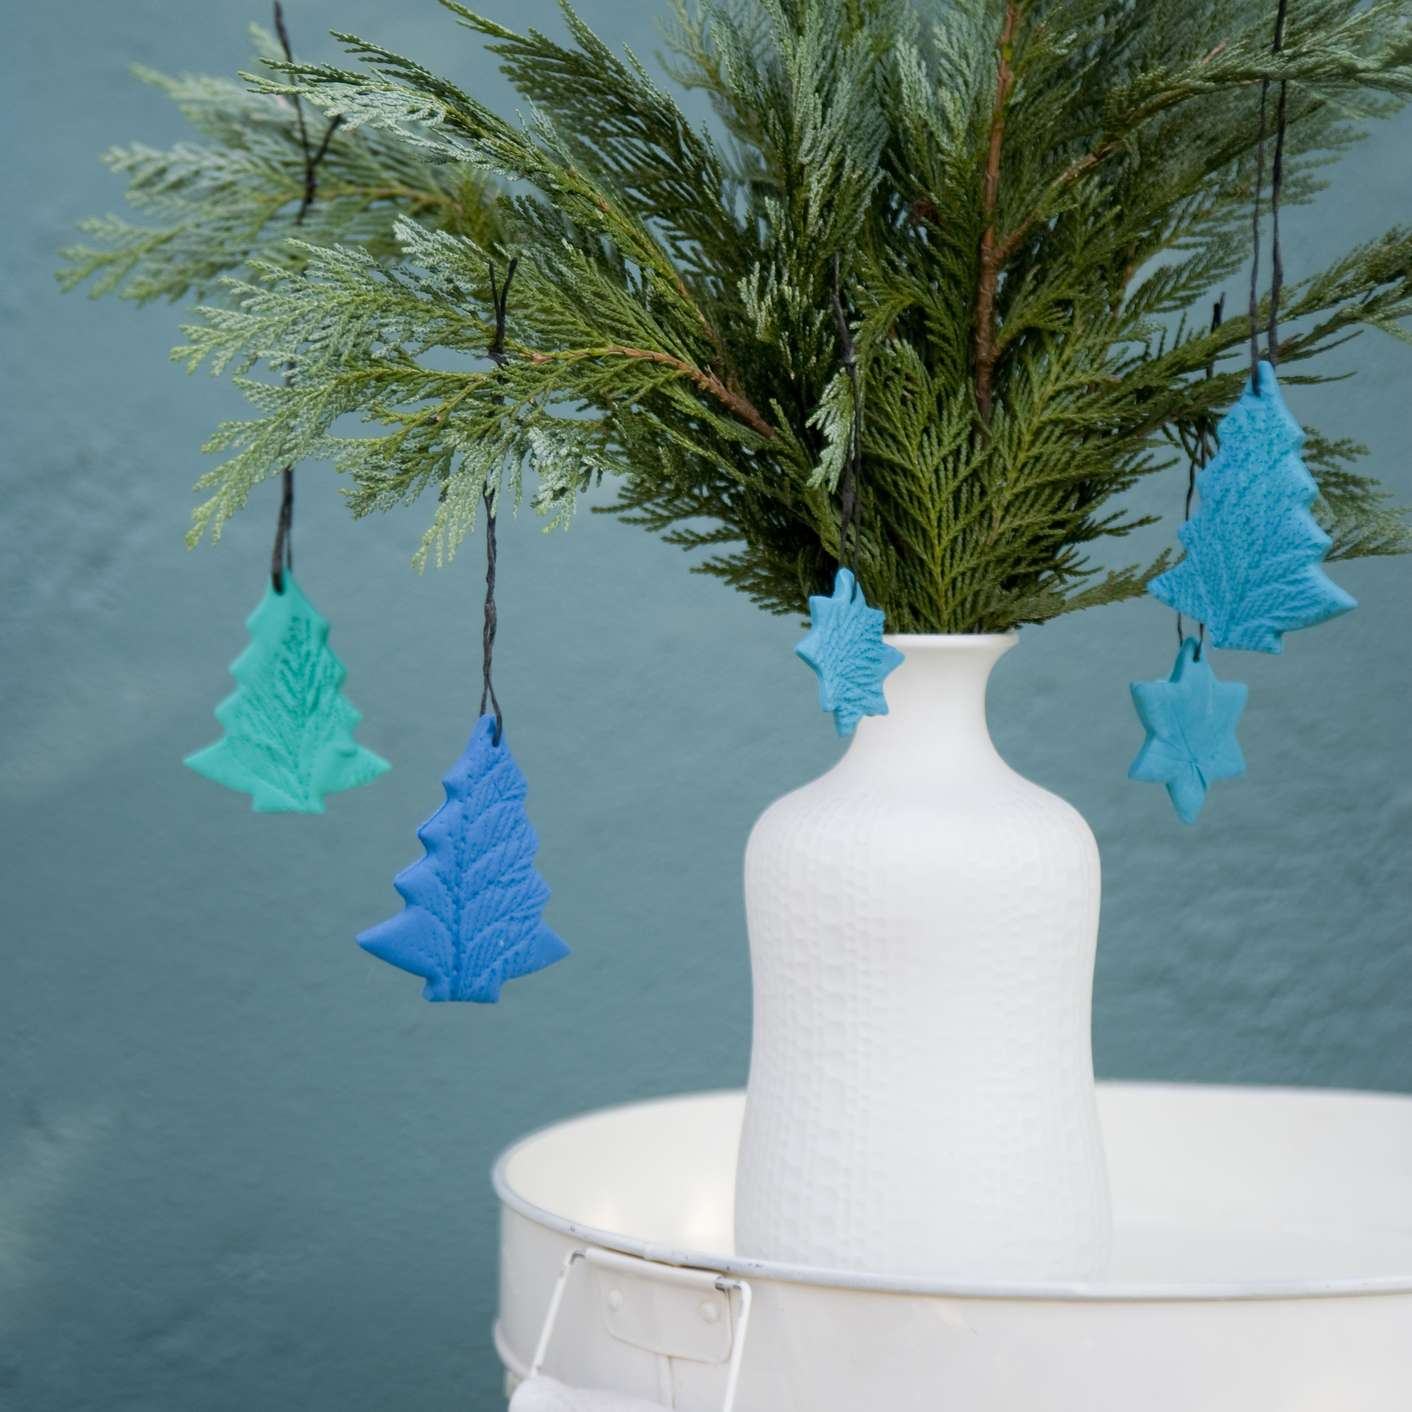 Ornaments hanging from branches